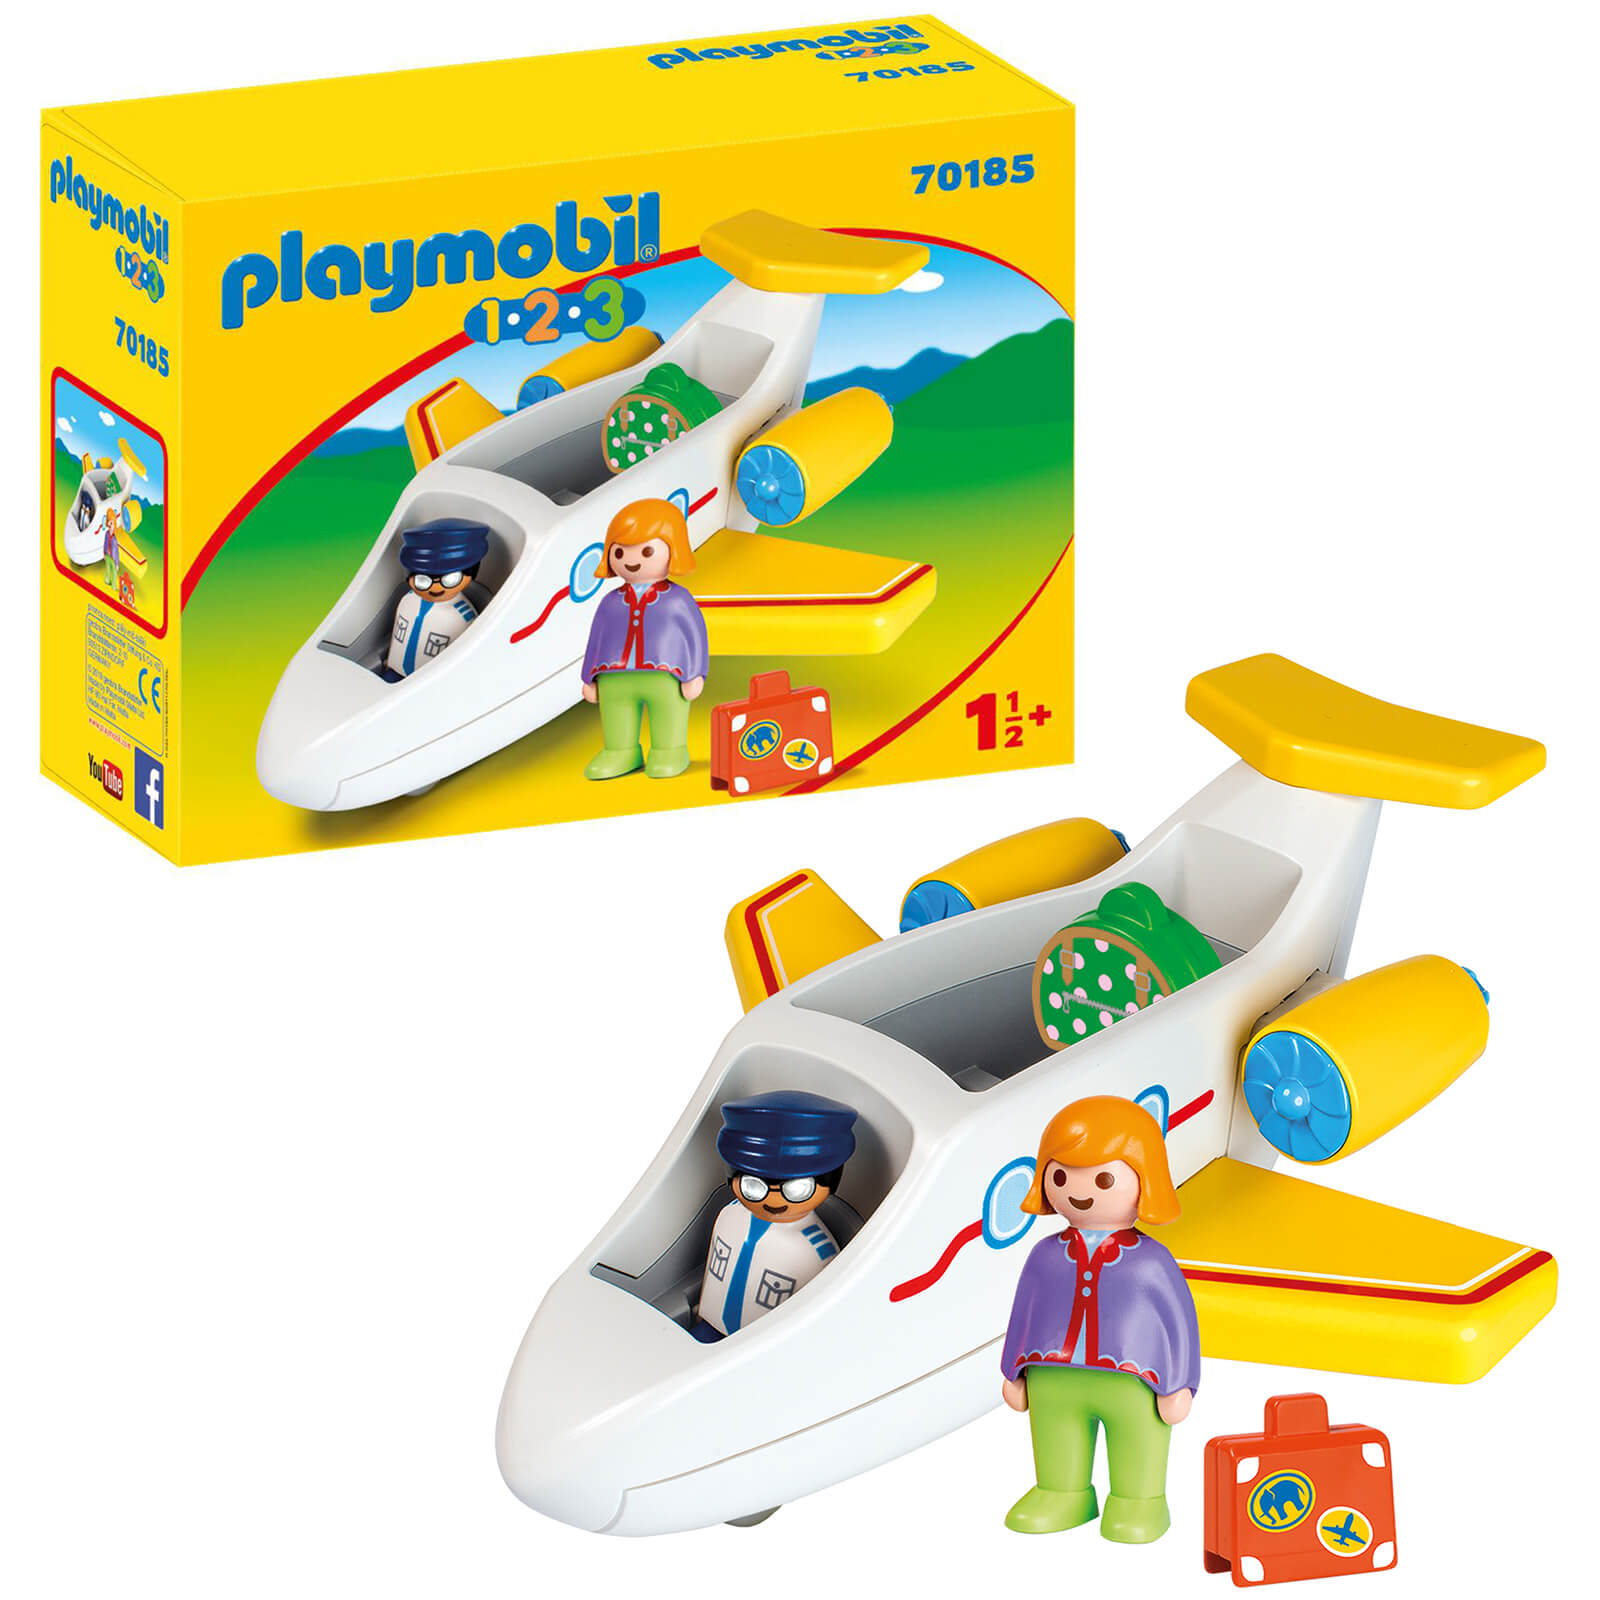 Playmobil 1.2.3 Plane With Passenger For Children 18 Months+ (70185)